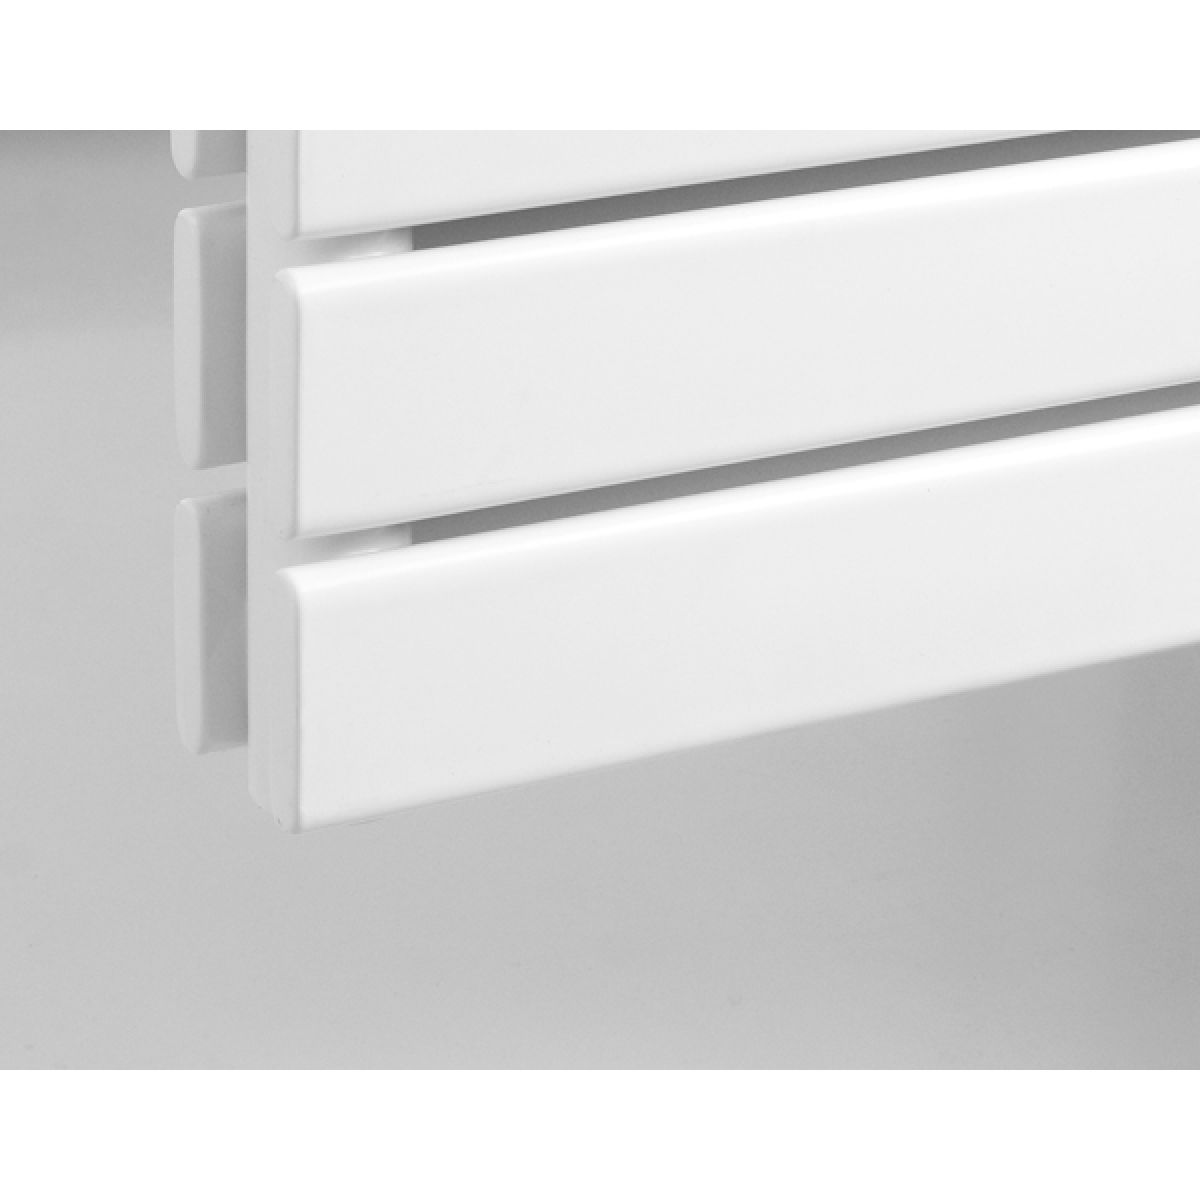 Rione Double White Electric Horizontal Radiator 550 x 800mm Detail 1